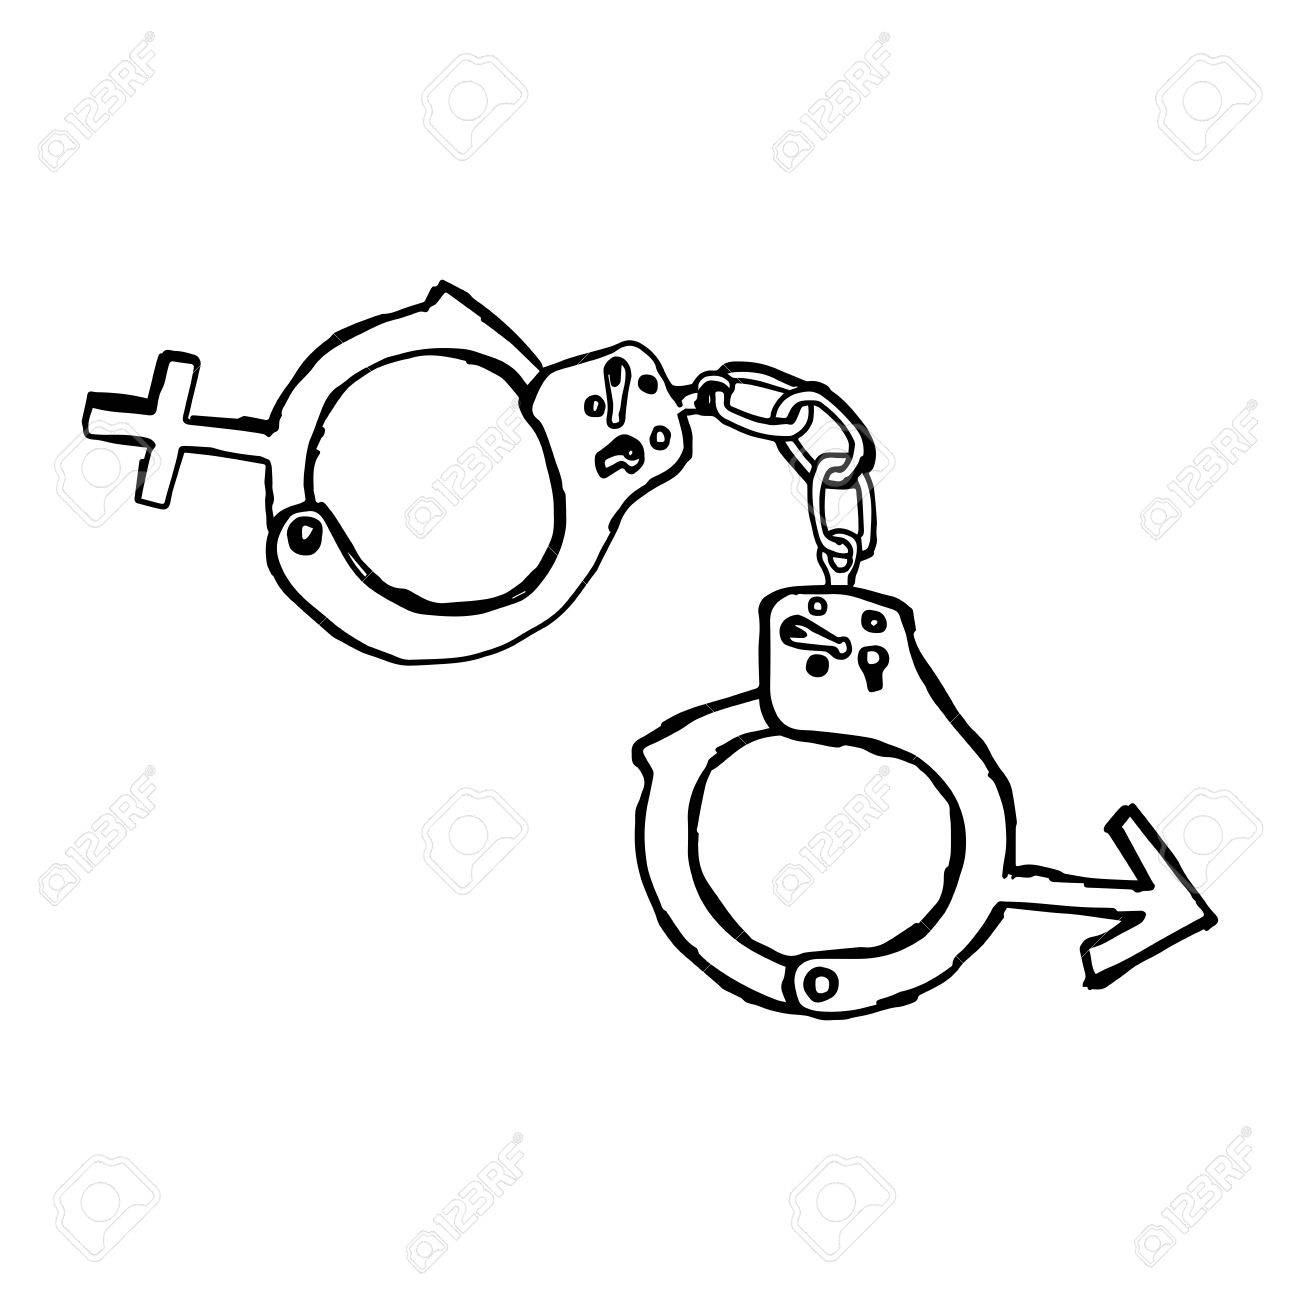 1300x1300 Illustration Vector Hand Drawn Doodles Of Handcuff With Sex Sign